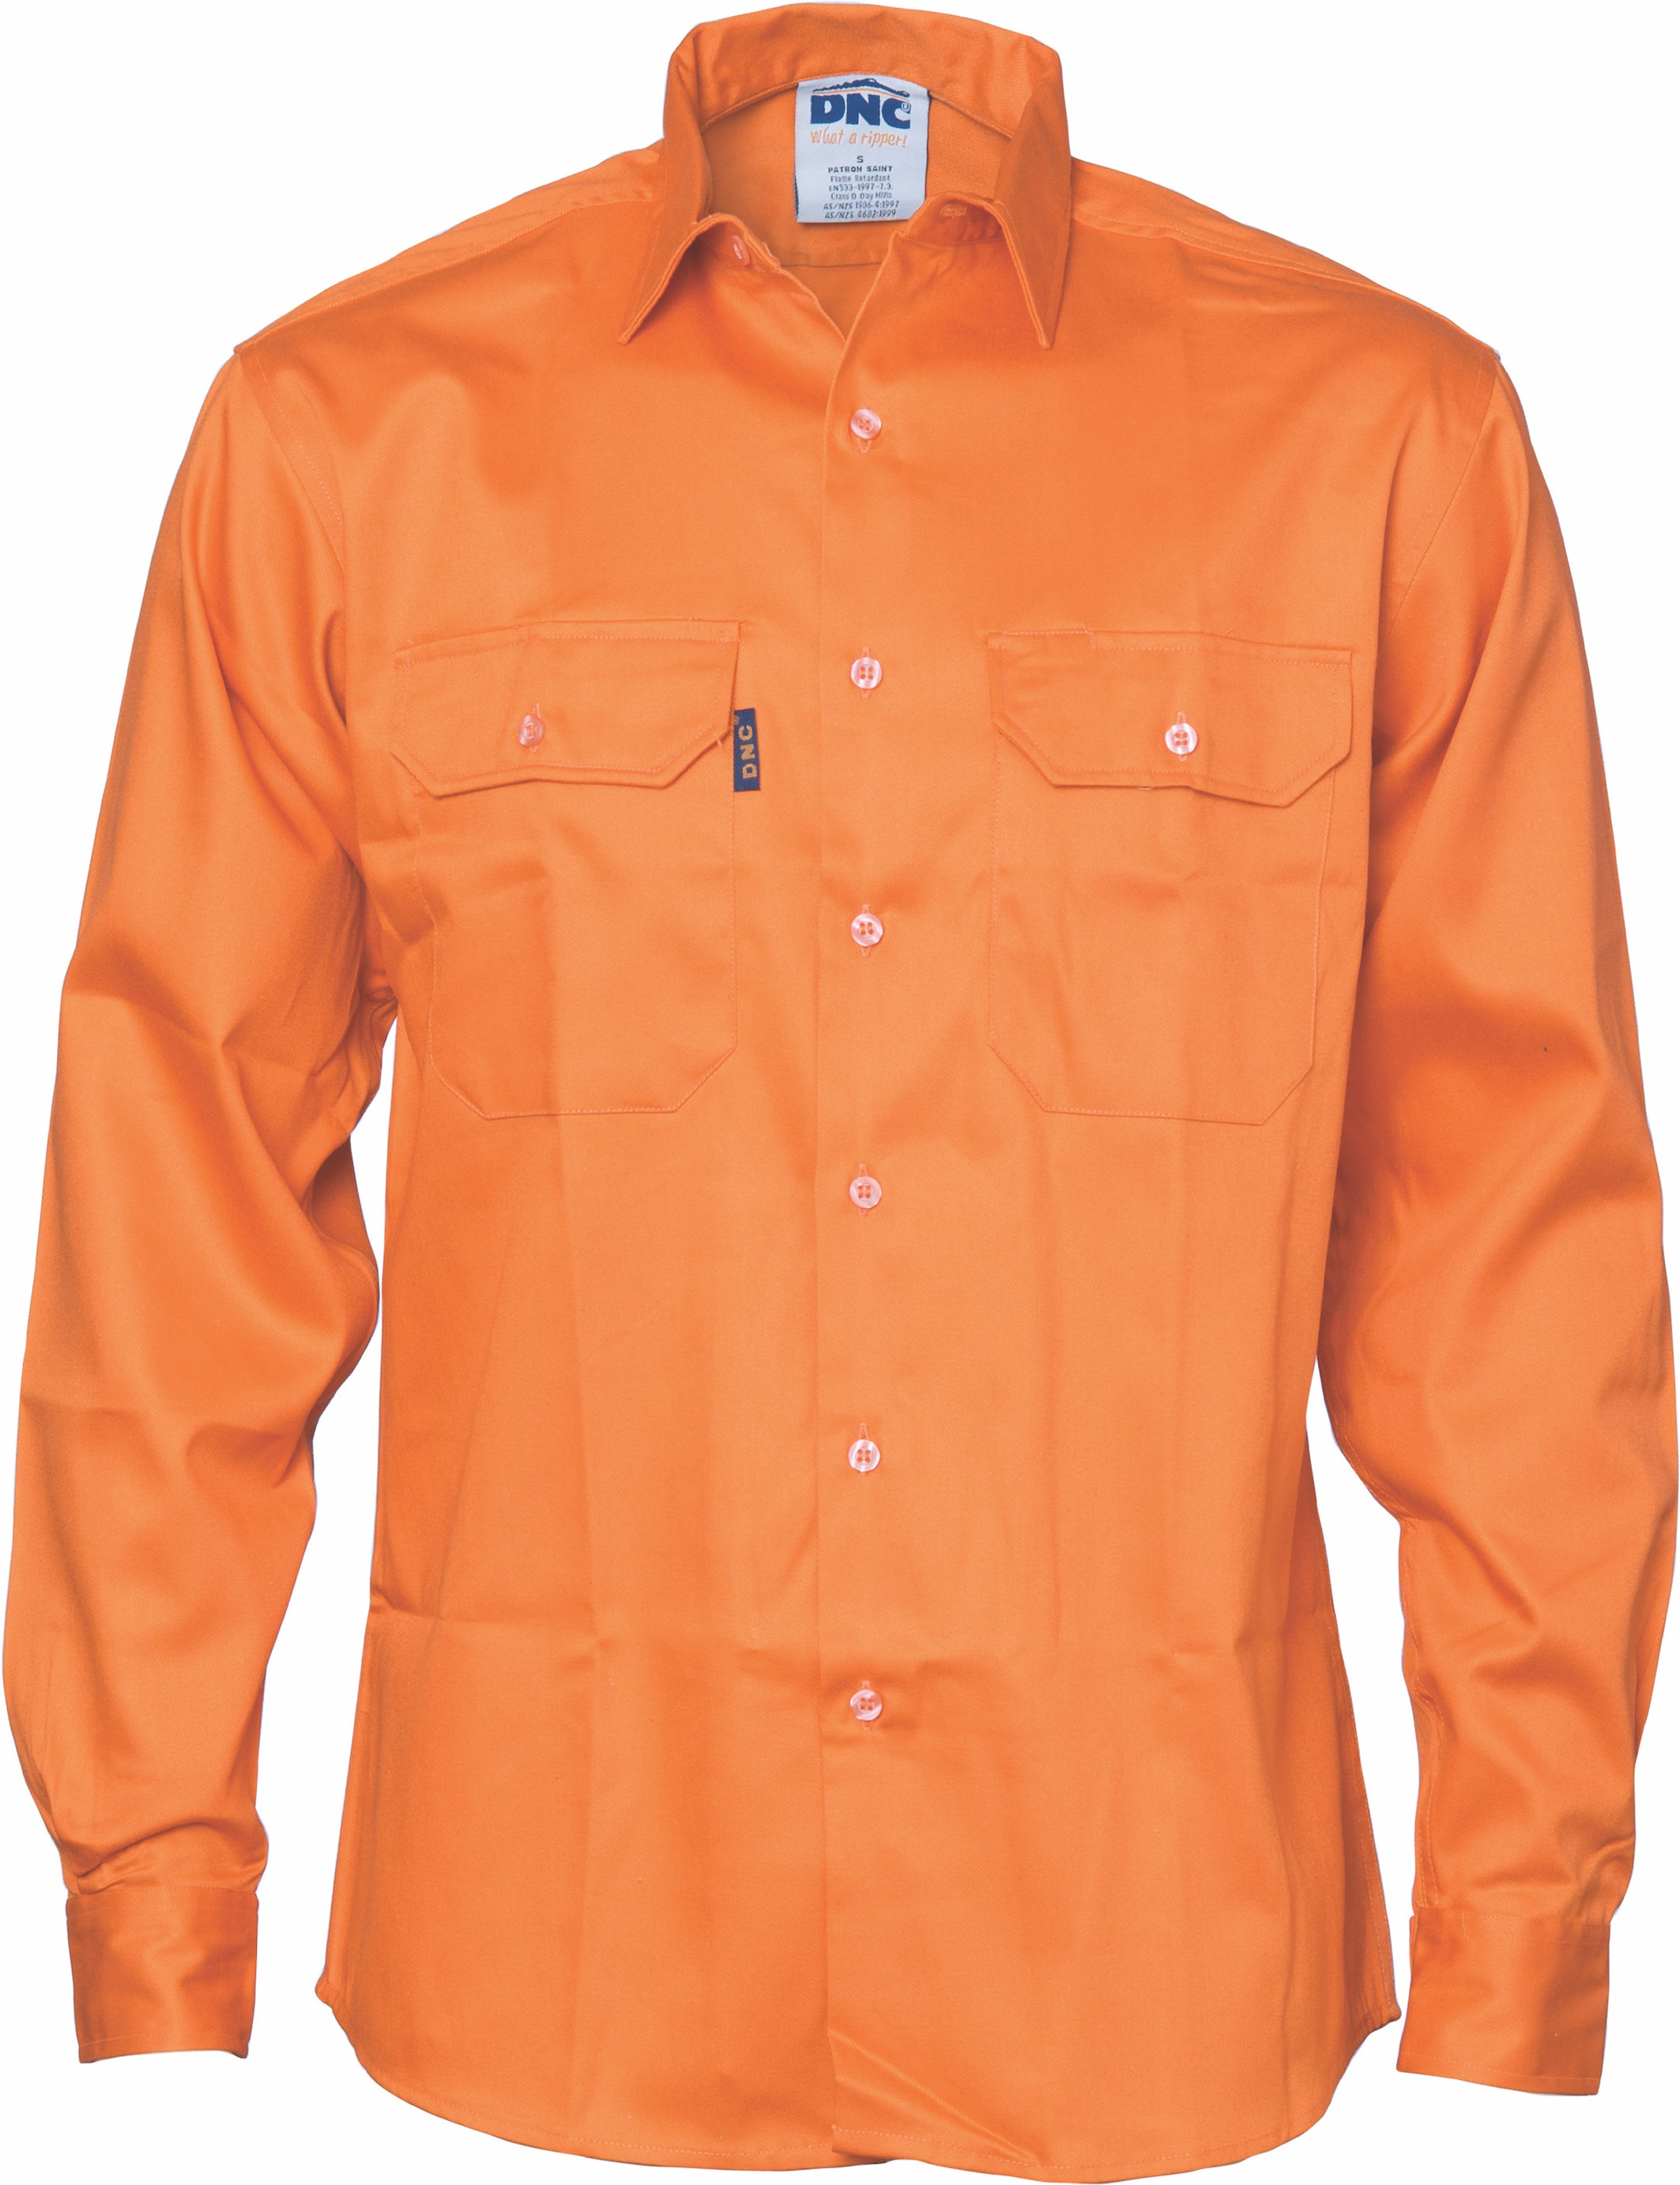 DNC - 3402 Patron Saint® Flame Retardant Drill Shirt, Long Sleeve